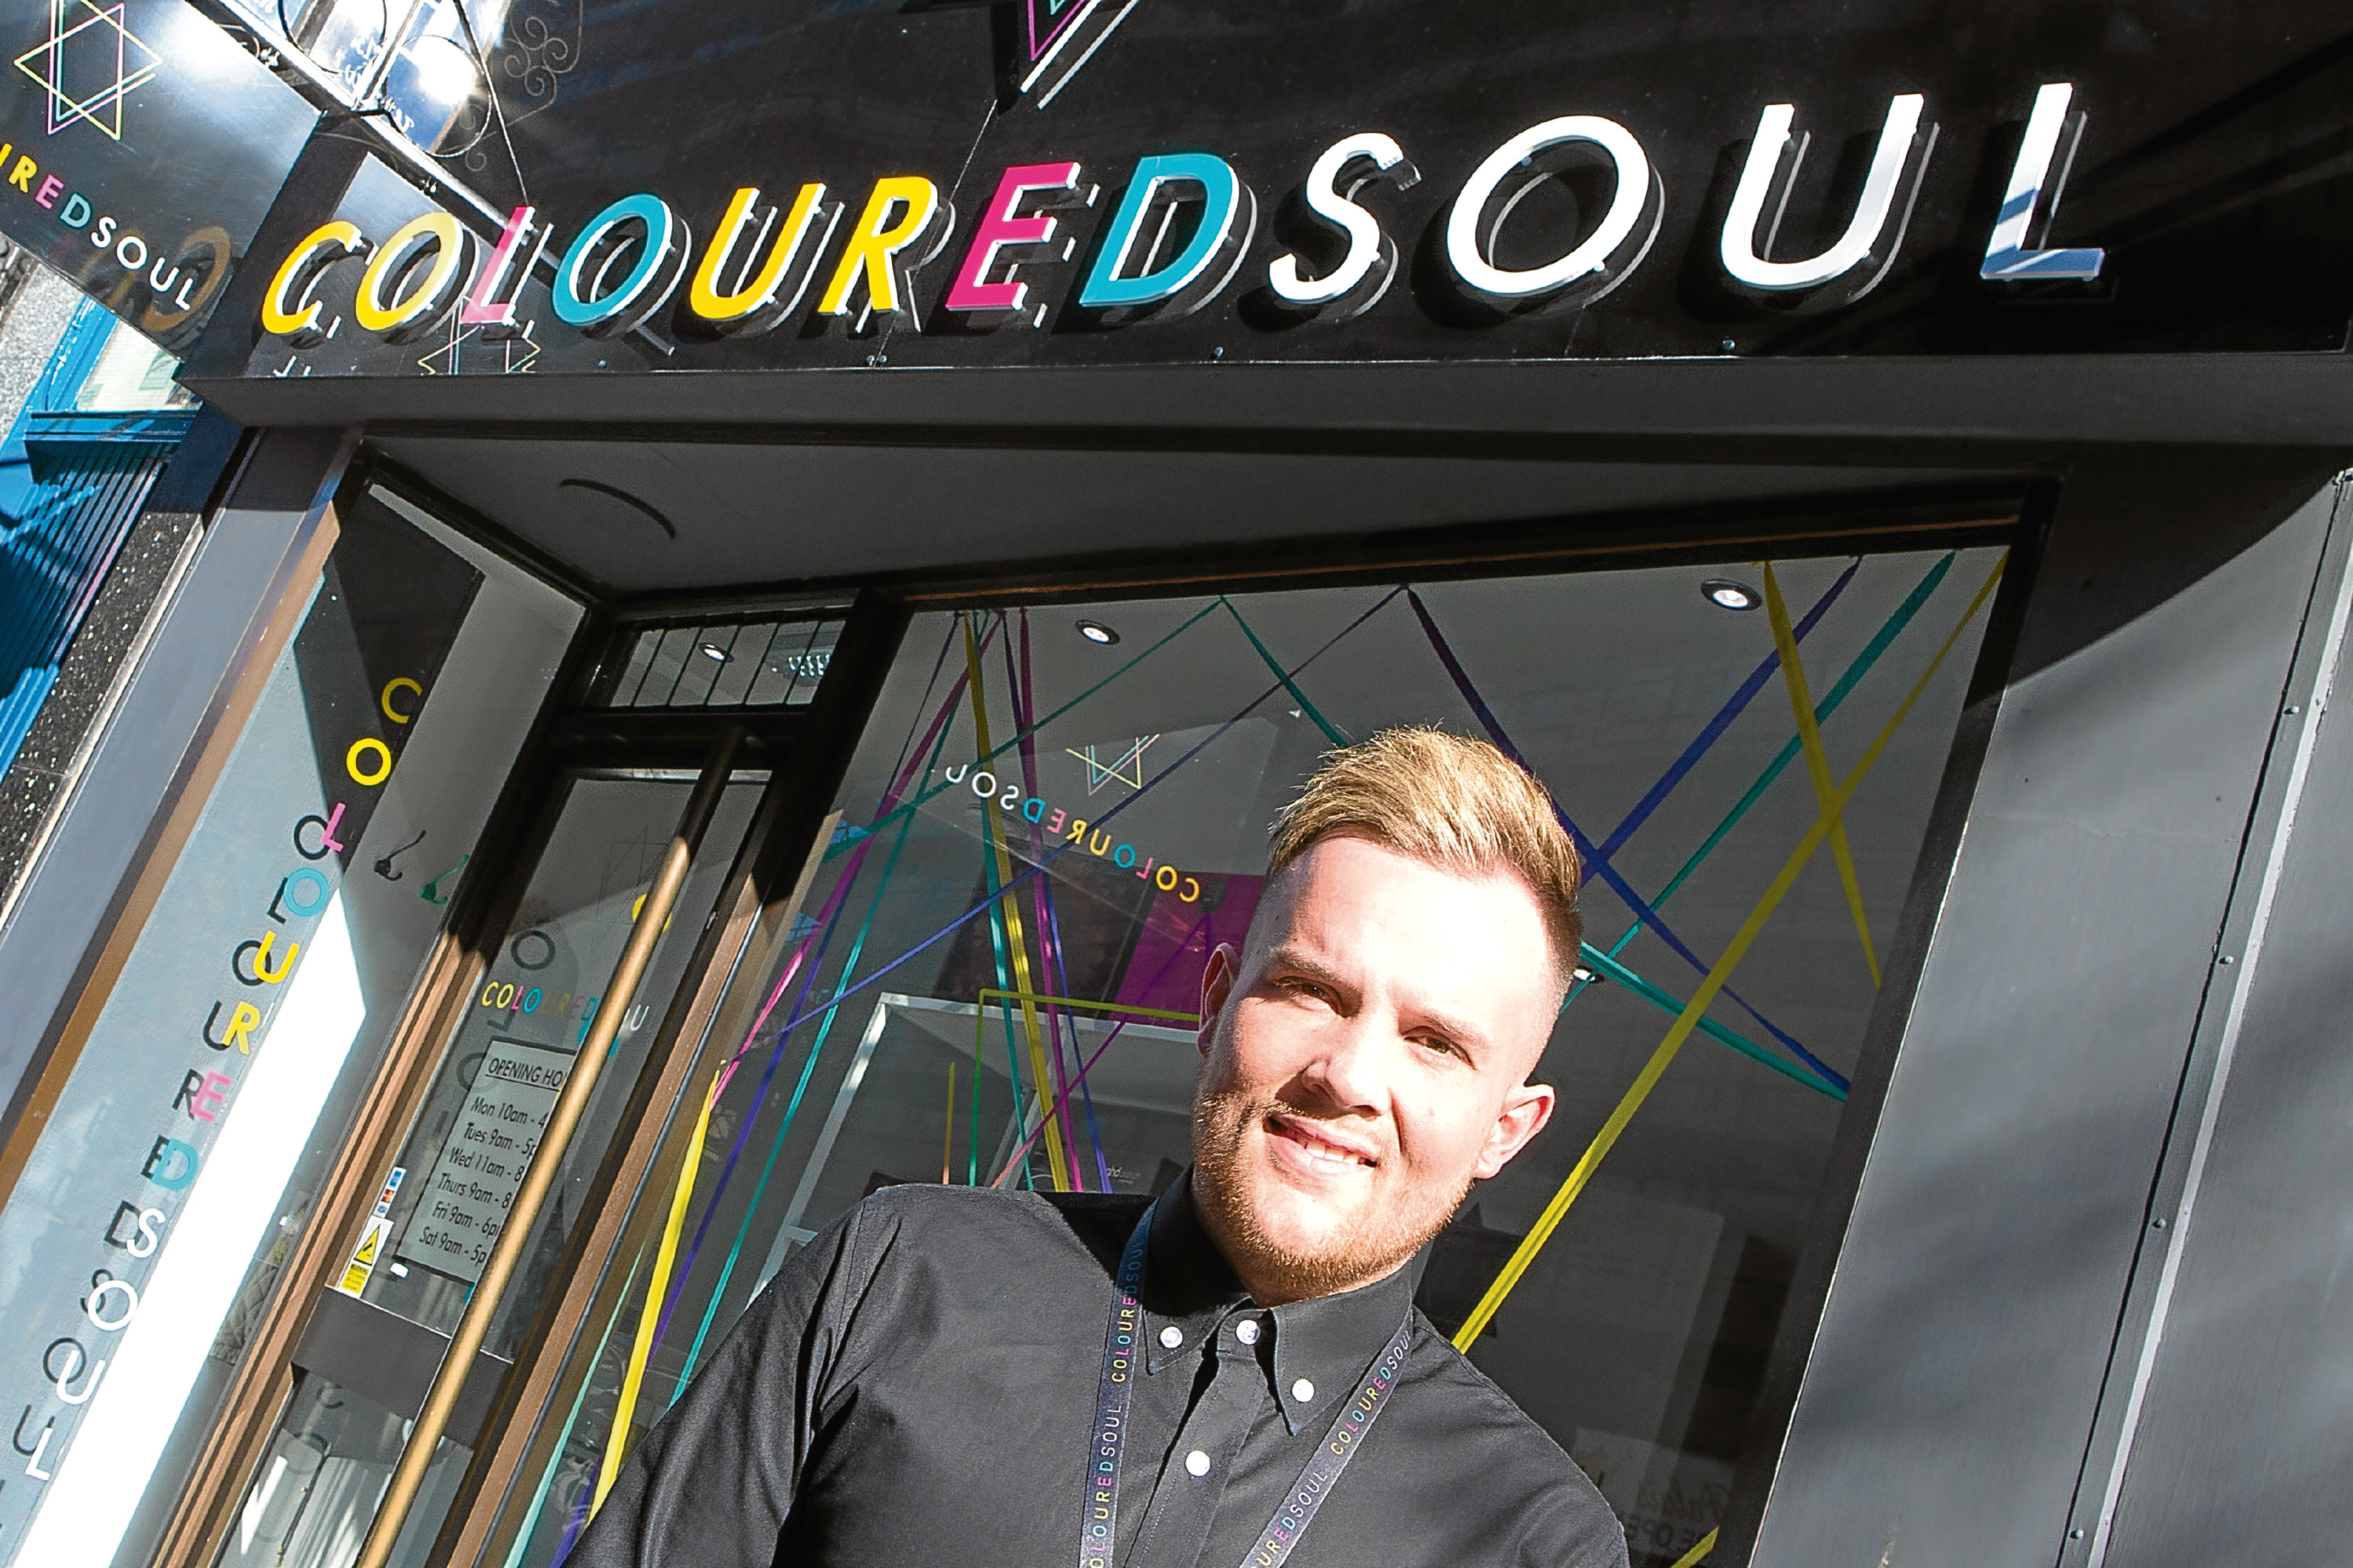 Rhys Davidson, co-owner of Coloured Soul, is celebrating after winning a national hairdressing competition.